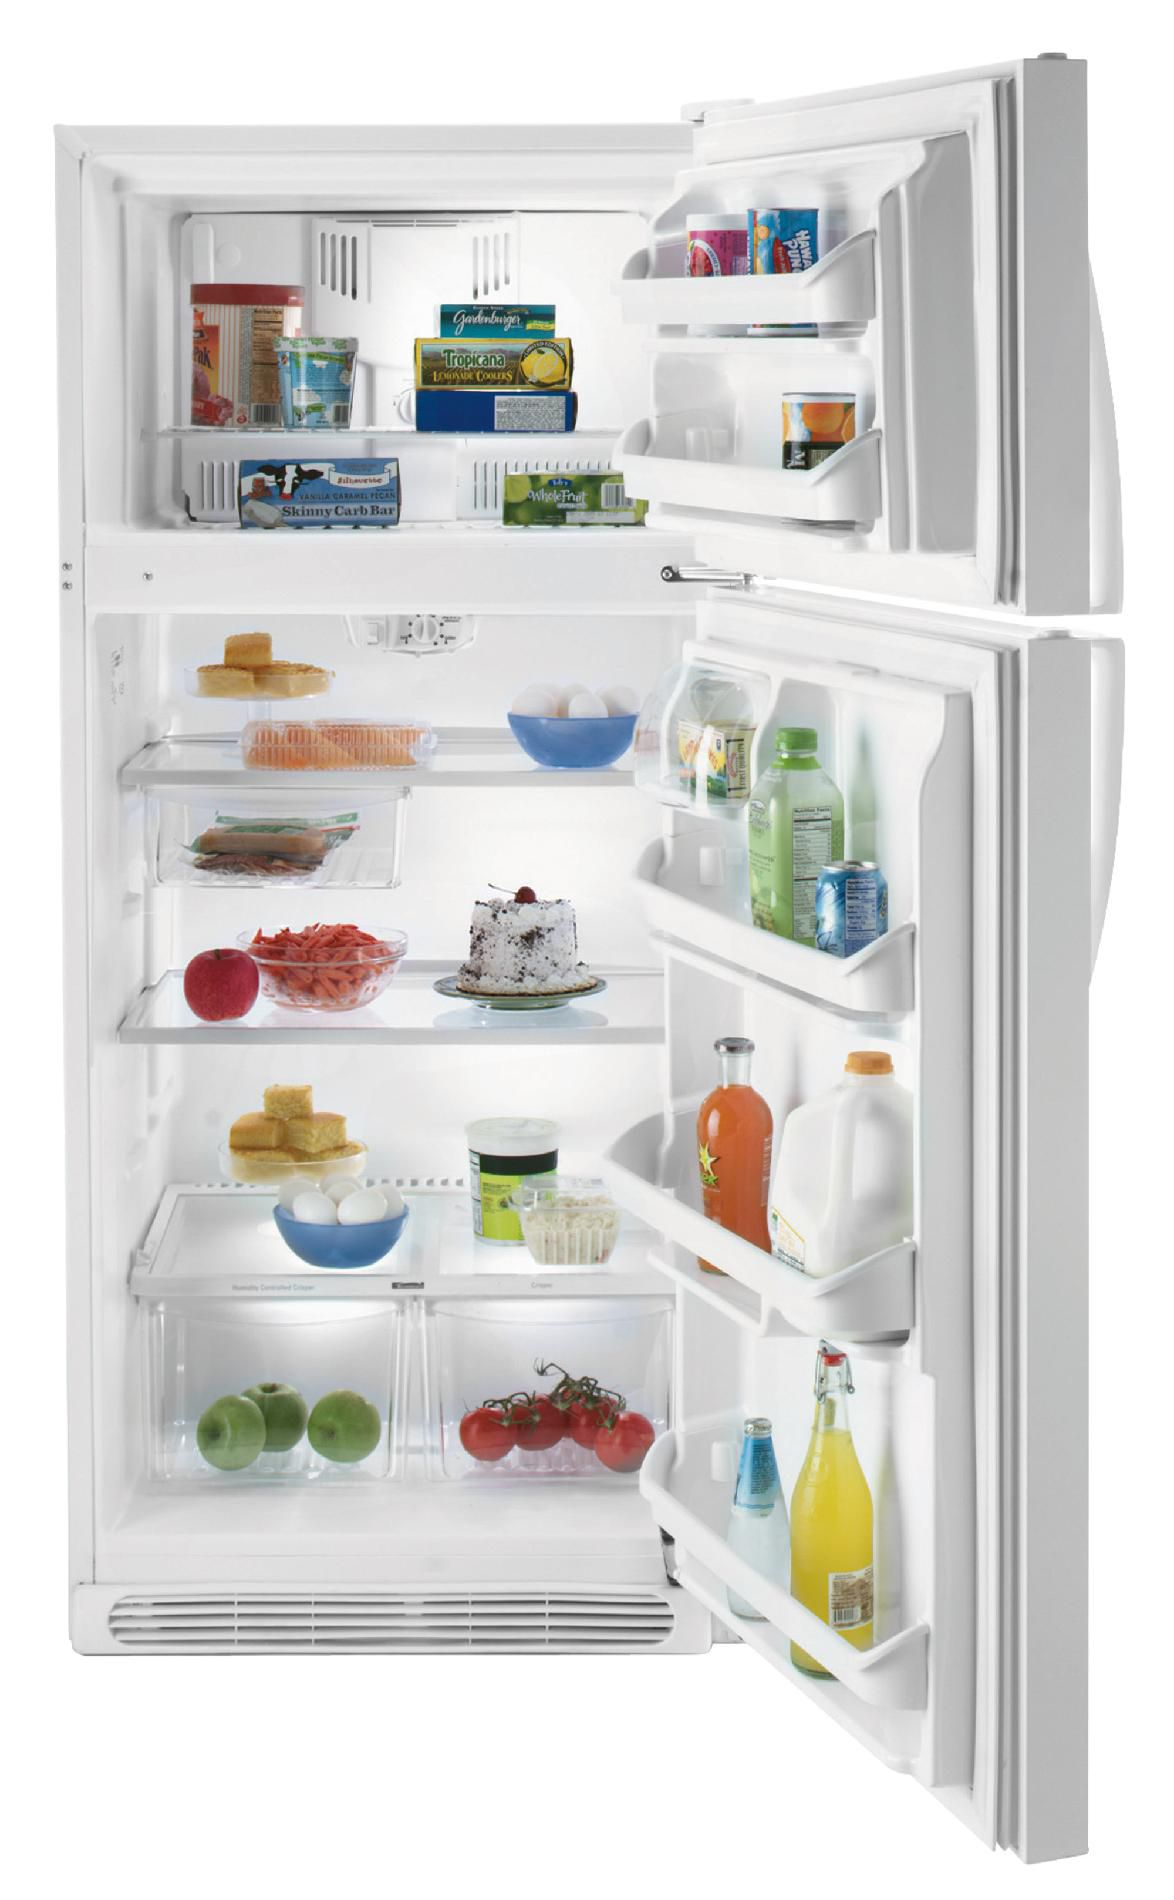 Kenmore 20.6 cu. ft. Top-Freezer Refrigerator